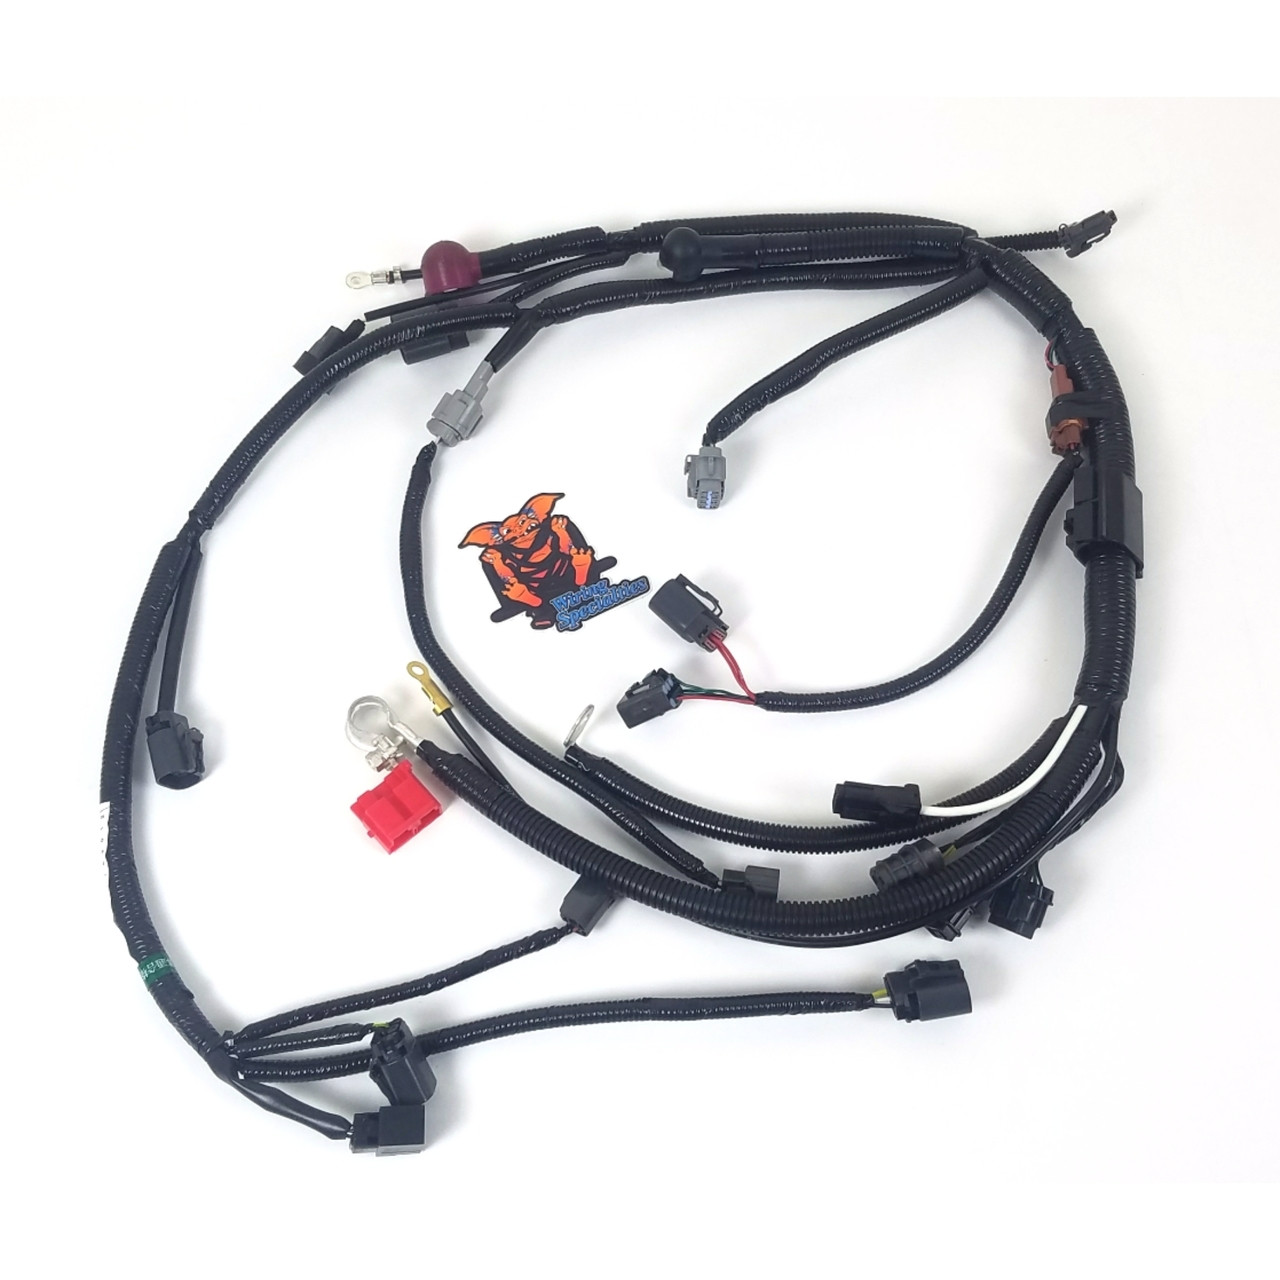 wiring specialties s14 ka24de lower harness for 240sx s14 enjuku Nissan 240SX Clutch wiring specialties s14 ka24de lower harness for 240sx s14 enjuku racing parts, llc